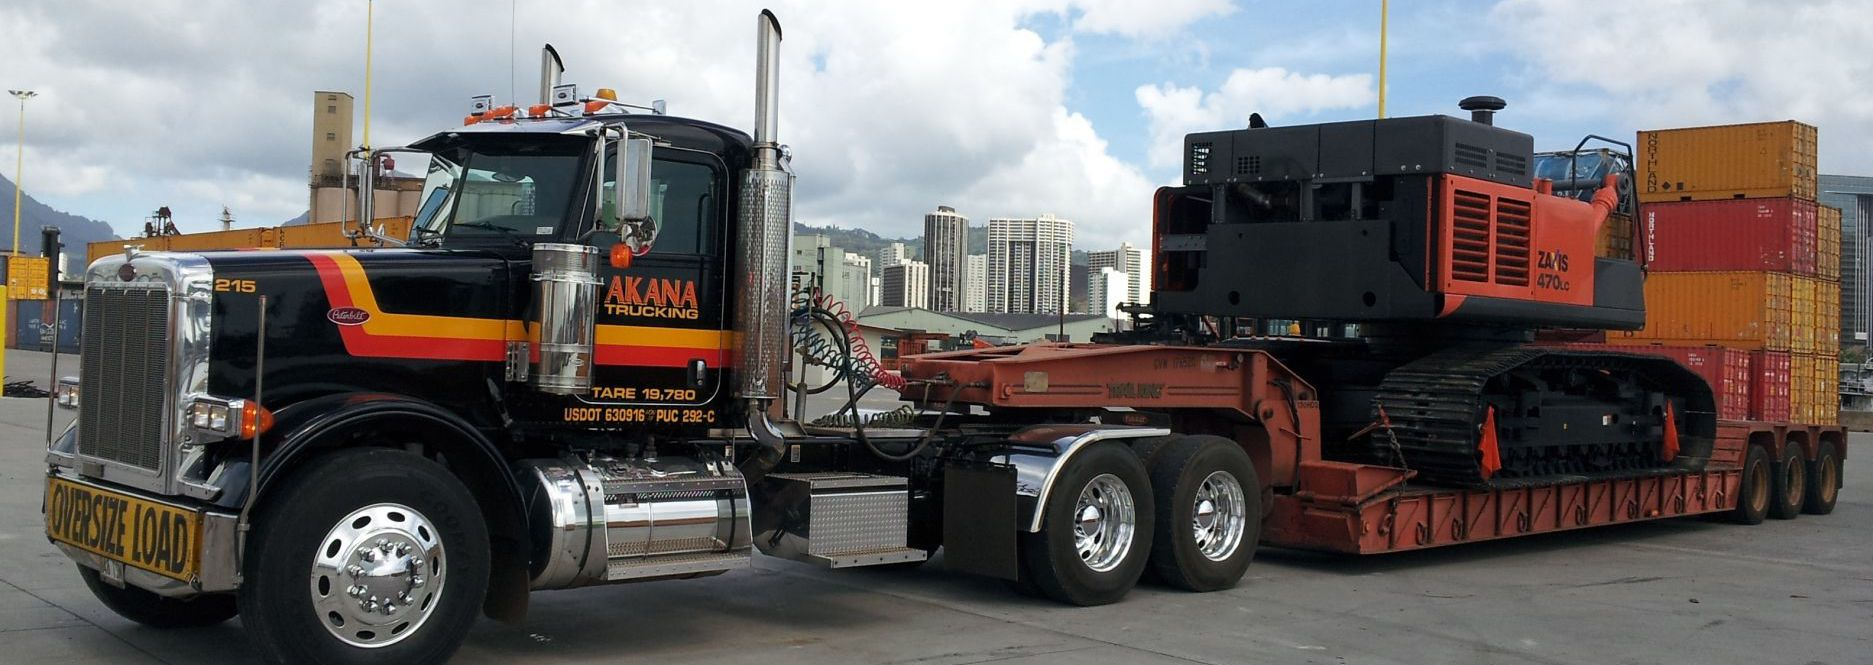 Akana Trucking hauling services in Honolulu, HI